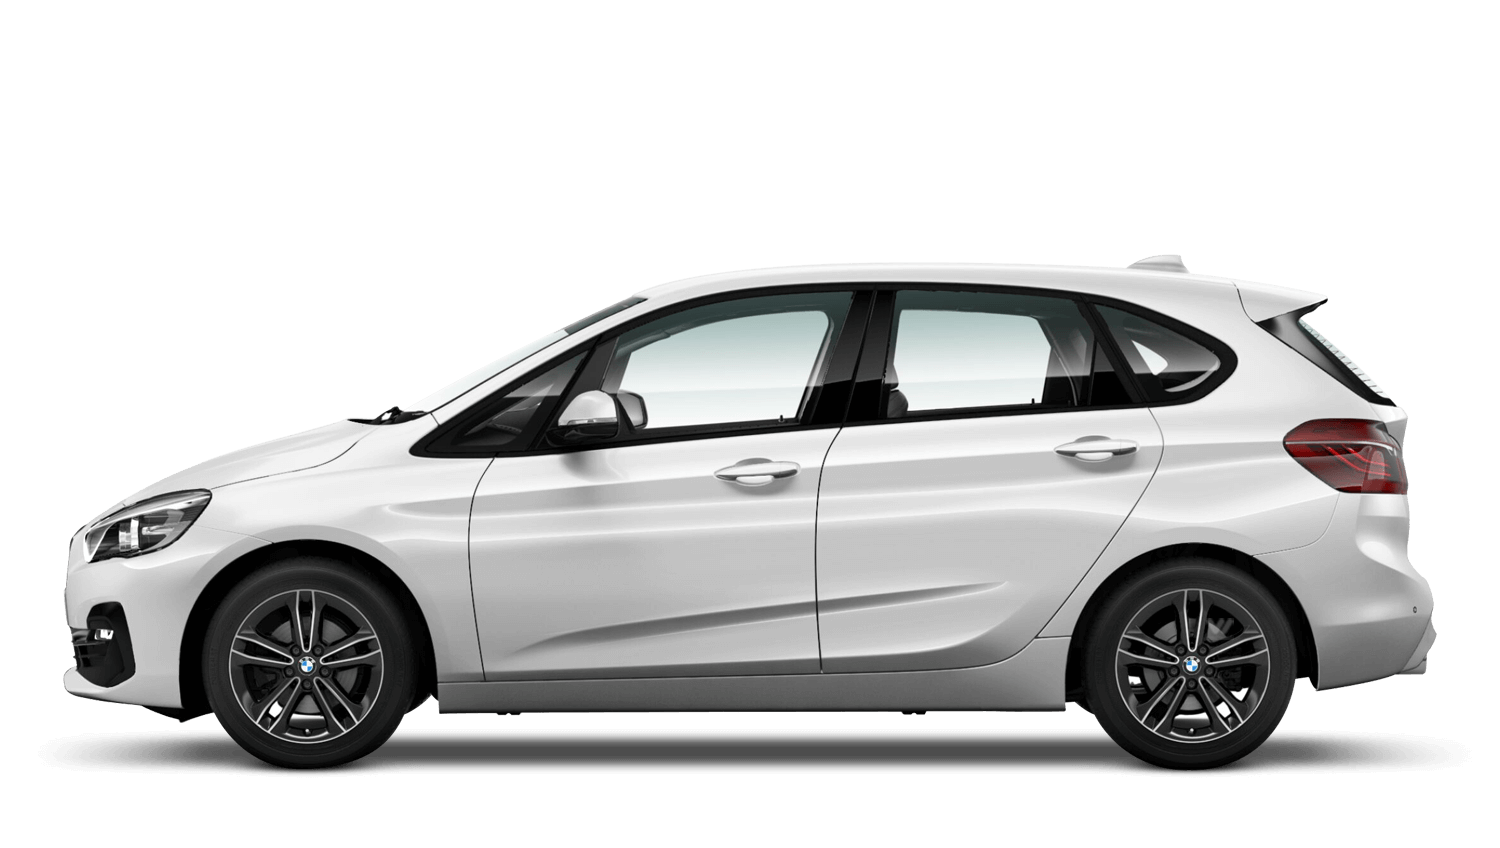 Mineral White (Metallic) BMW 2 Series Active Tourer